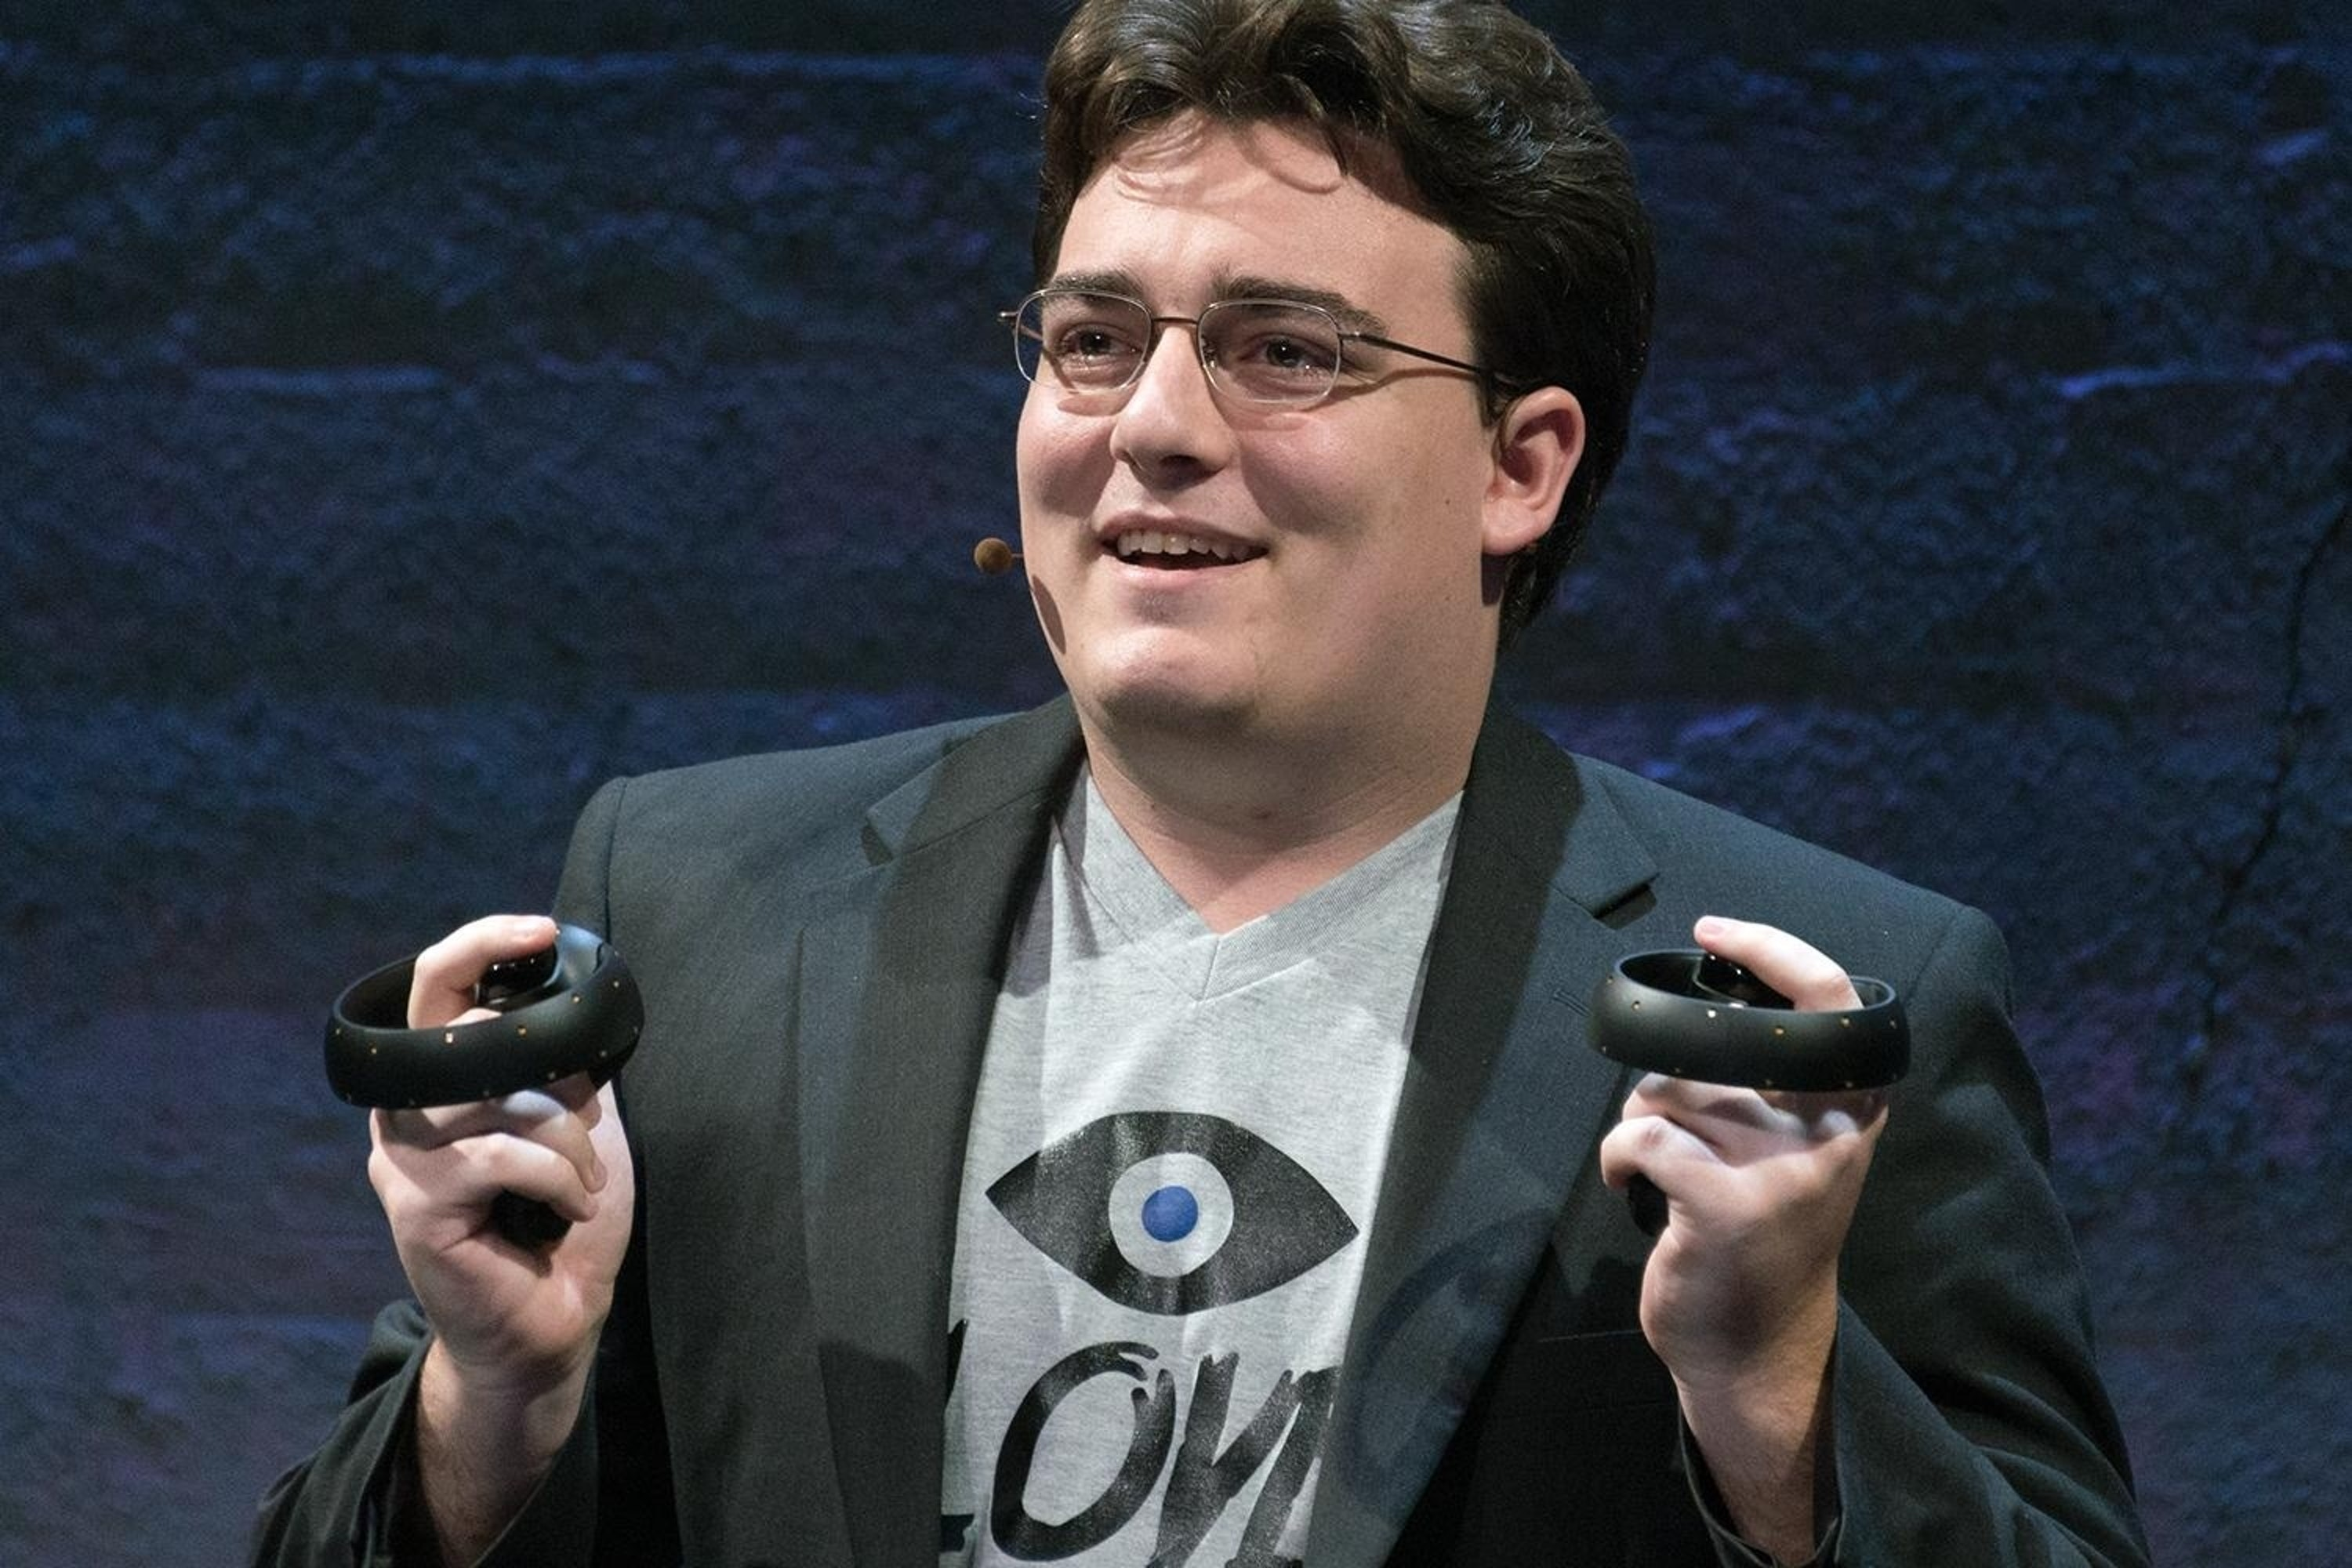 Palmer Luckey at a previous Oculus event.